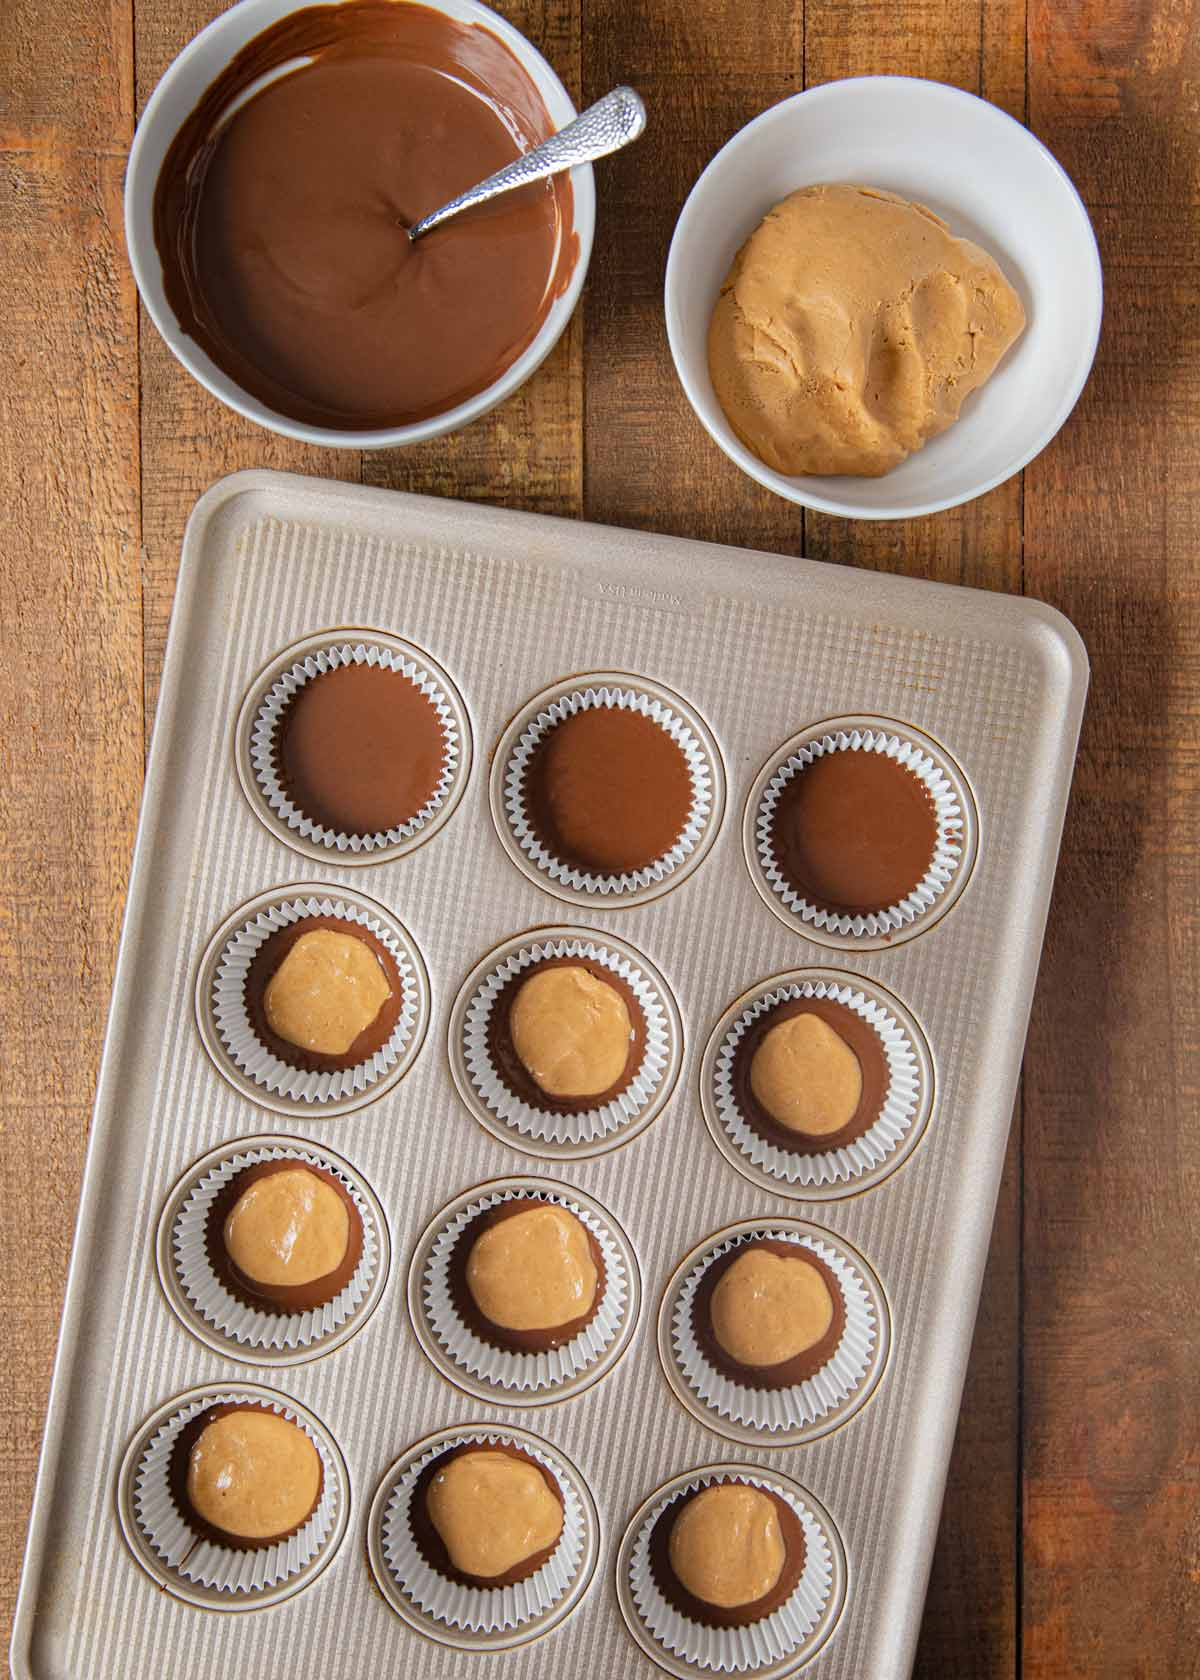 Chocolate Peanut Butter Cups chocolate and peanut butter in cupcake tin